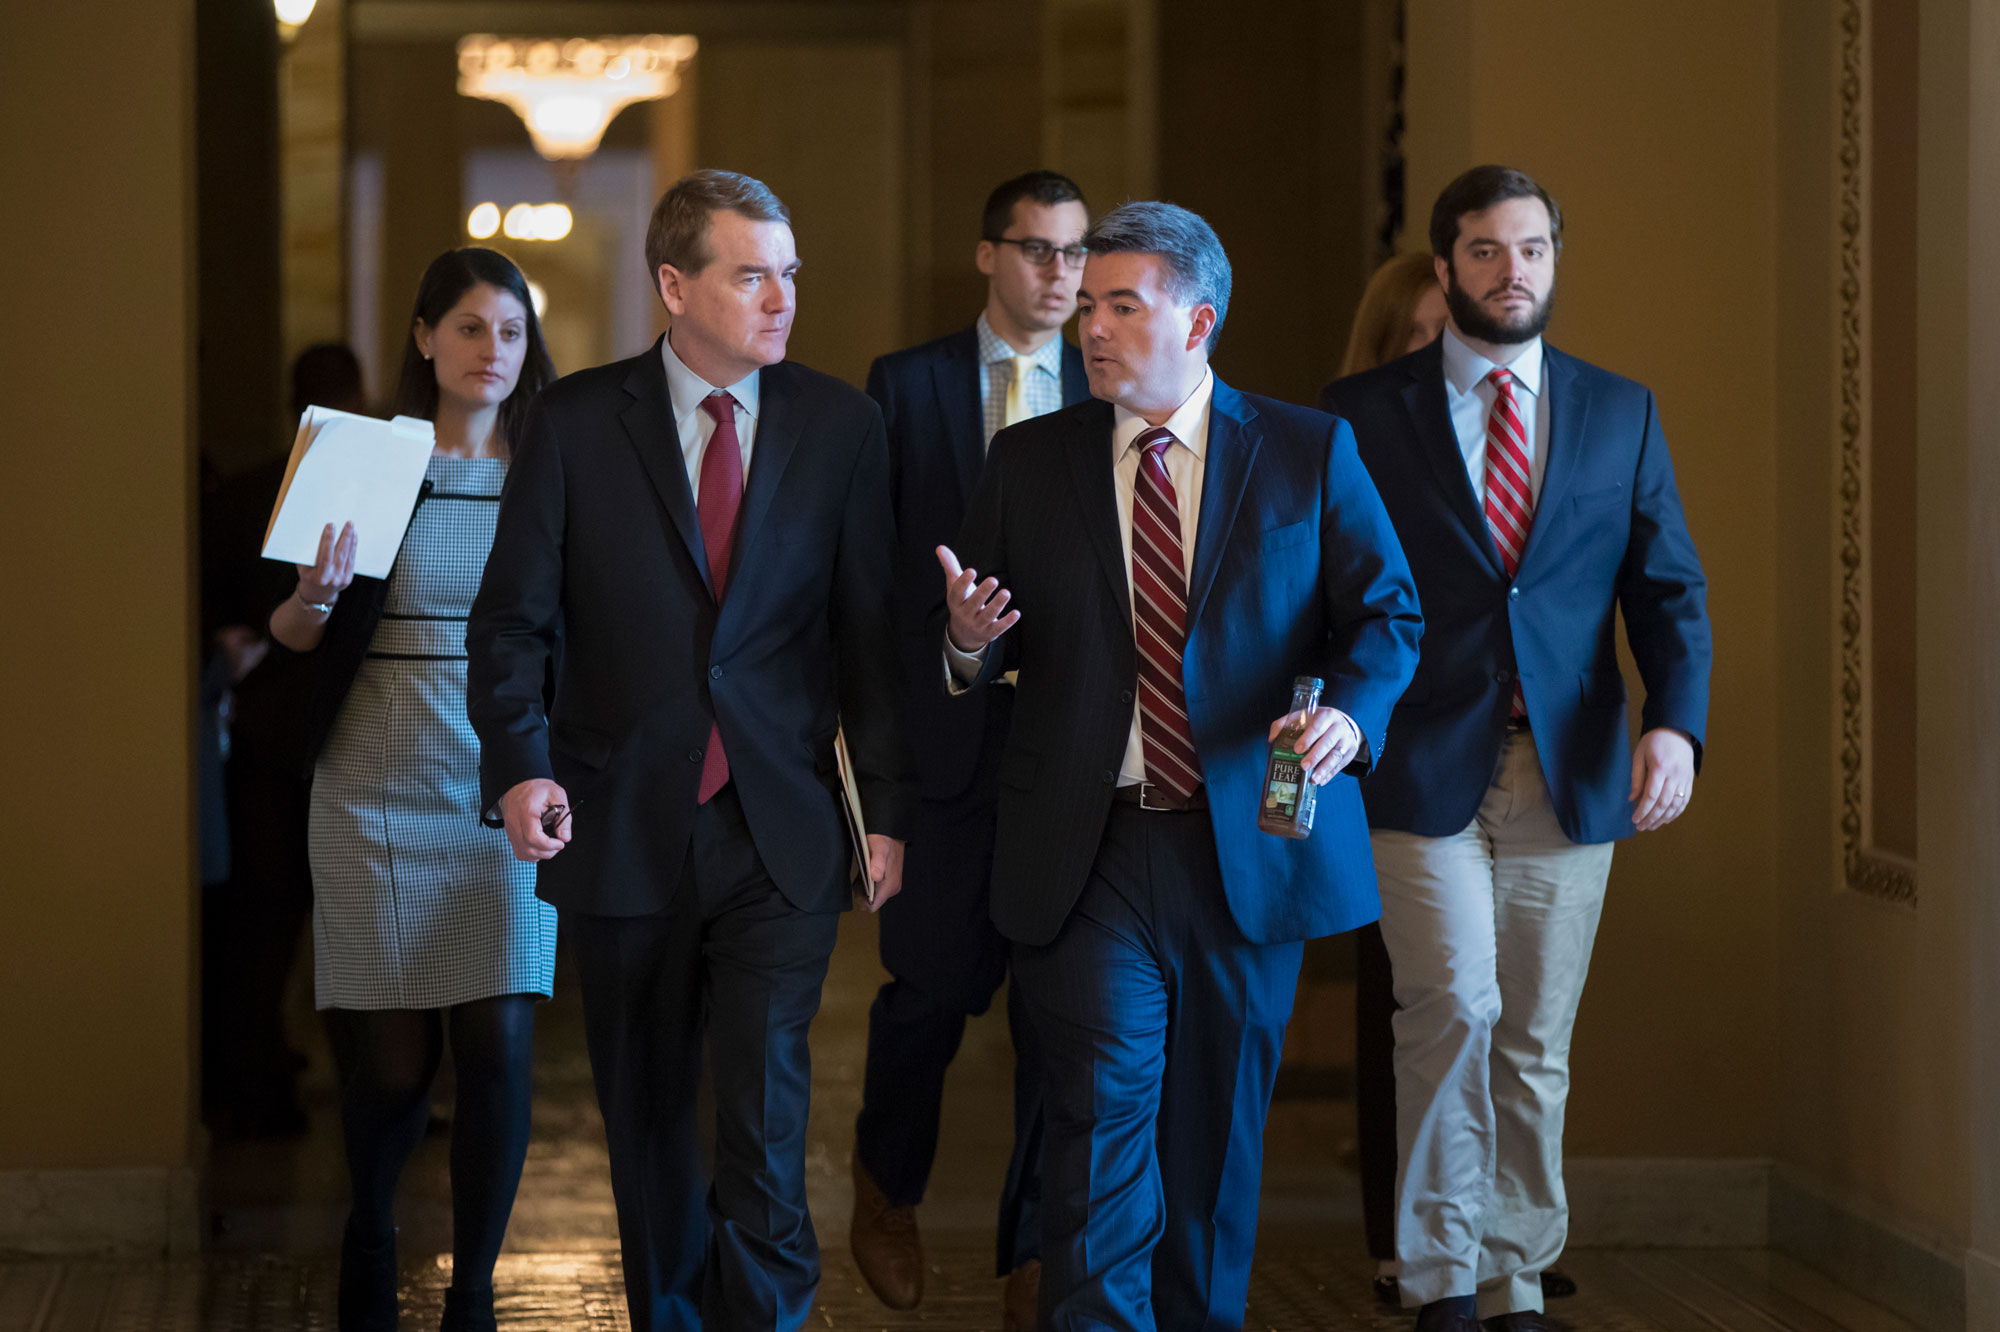 <p>Sen. Michael Bennet, D-Colo., left, and Sen. Cory Gardner, R-Colo., head to the chamber for a series of procedural votes on a bipartisan immigration deal, at the Capitol in Washington, Thursday, Feb. 15, 2018.</p>